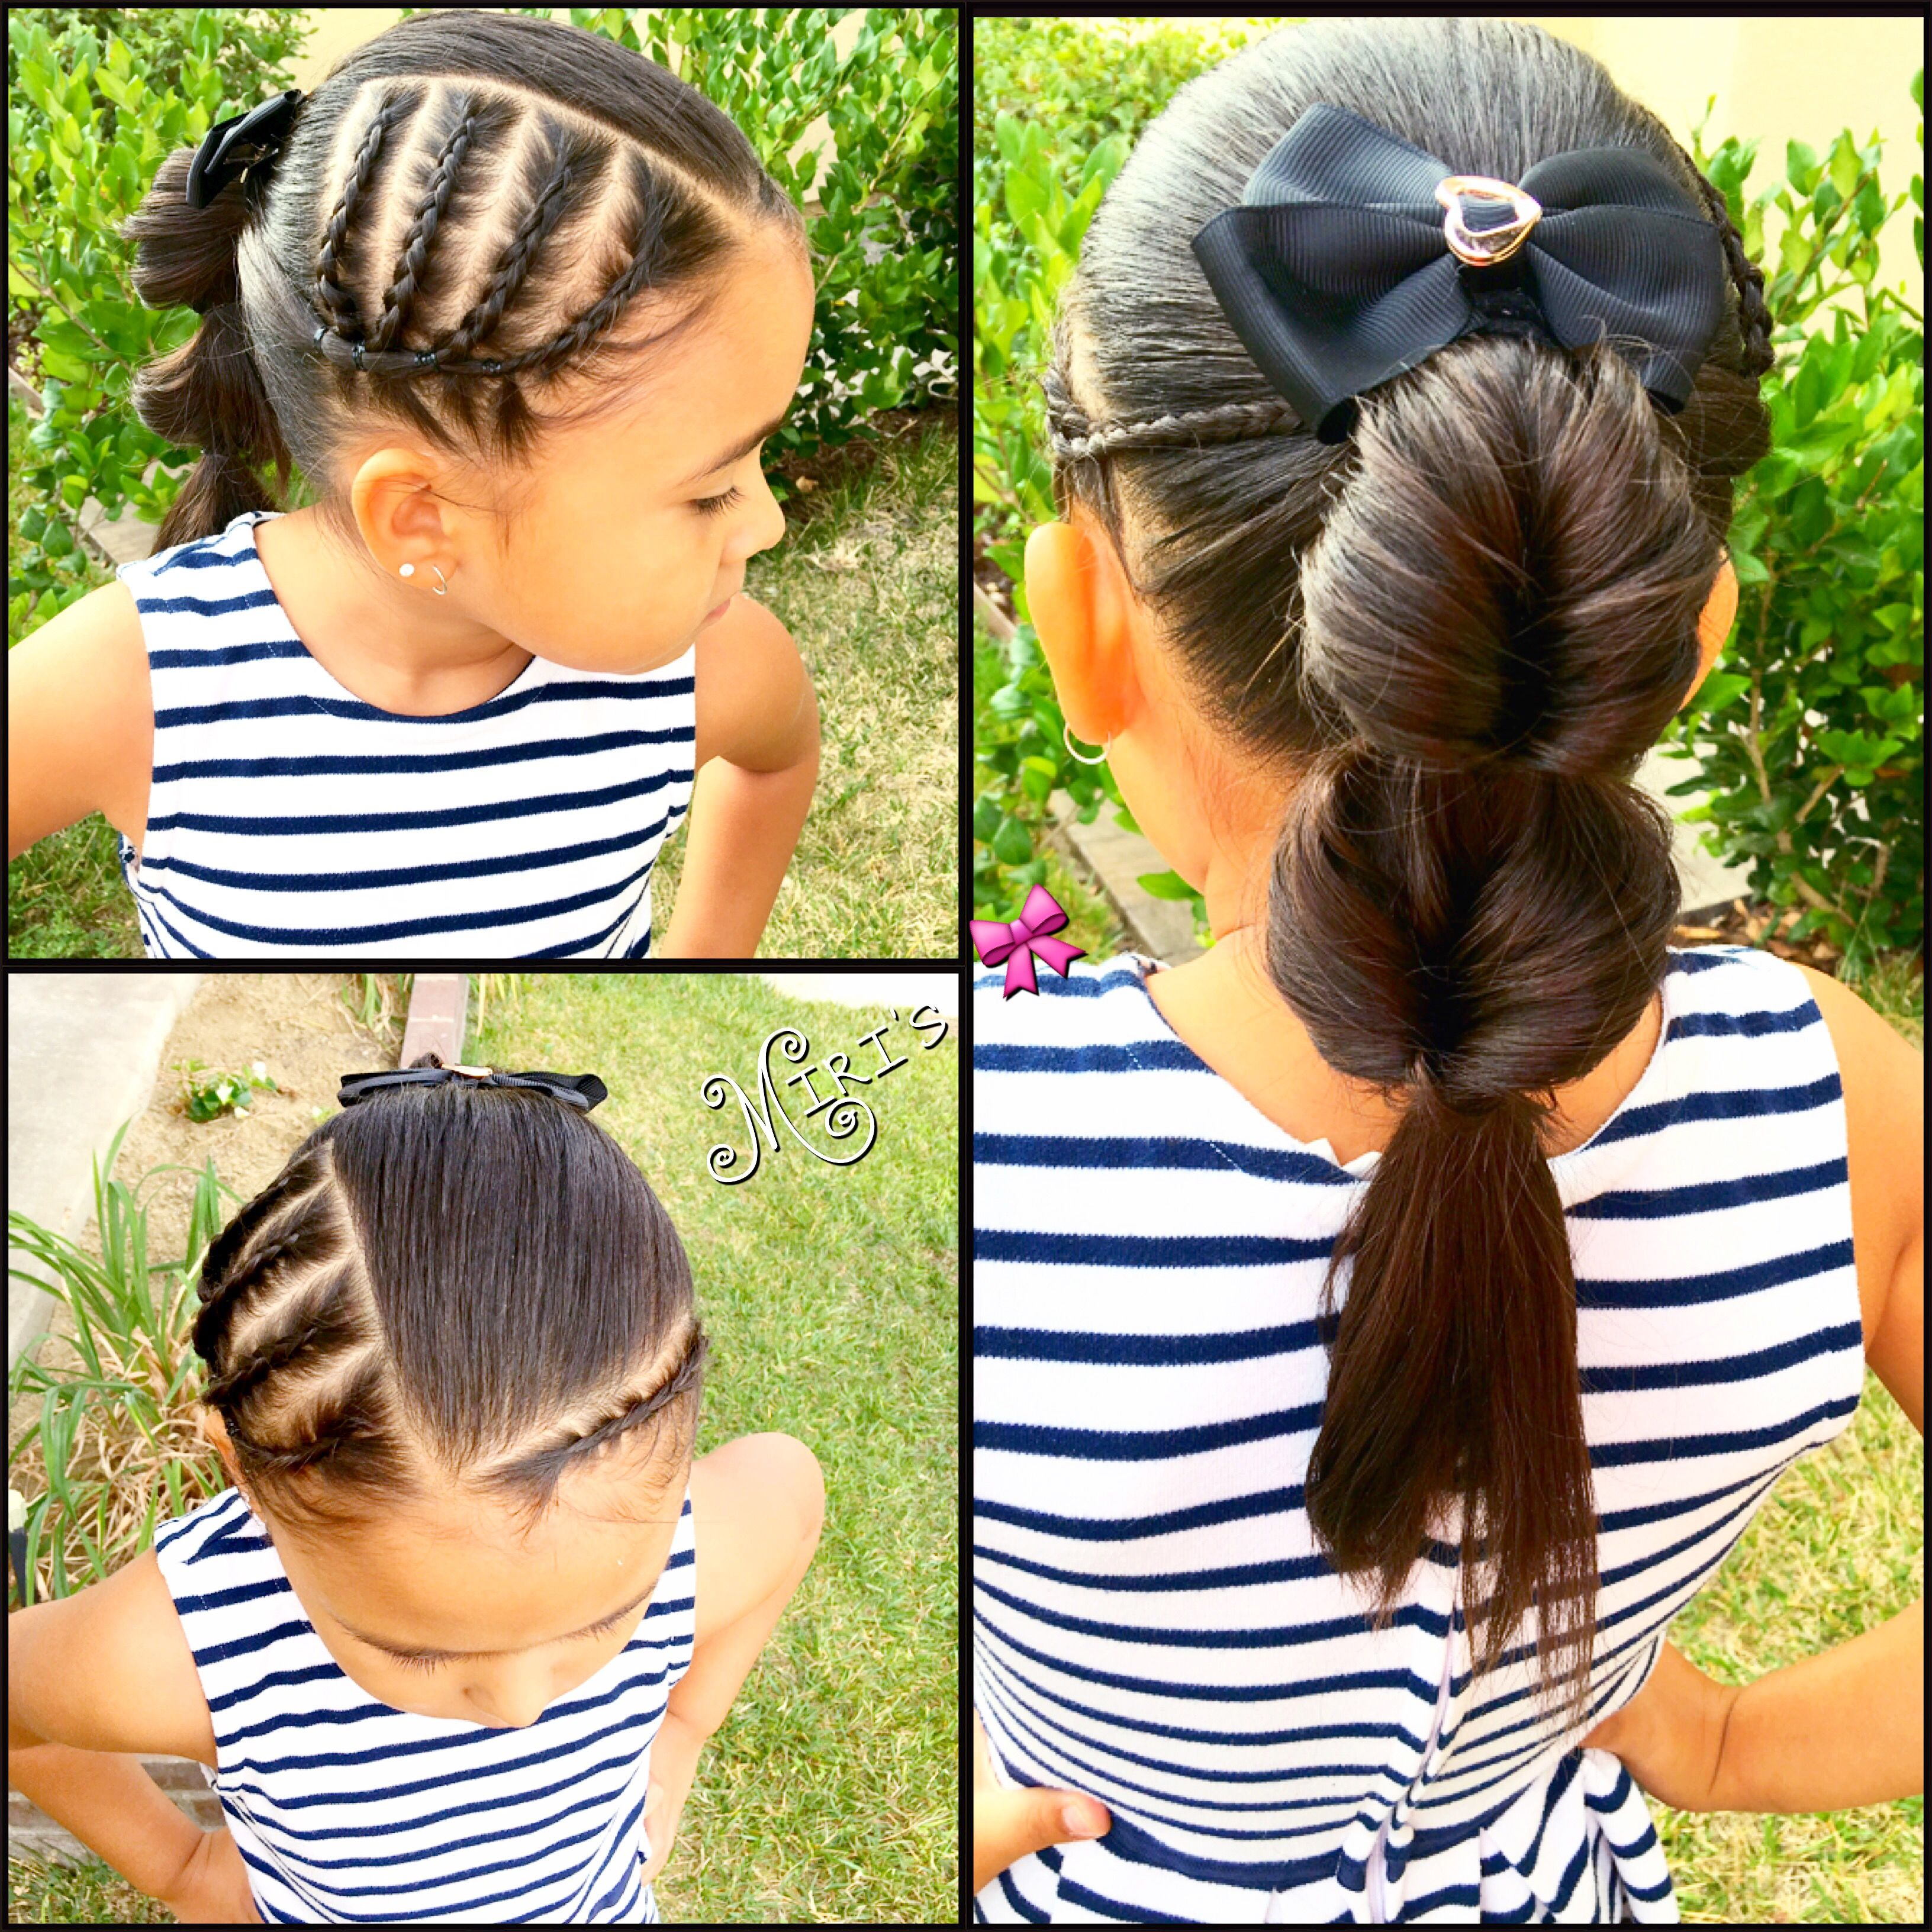 Braids hair style for little girls   Braided hairstyles ...